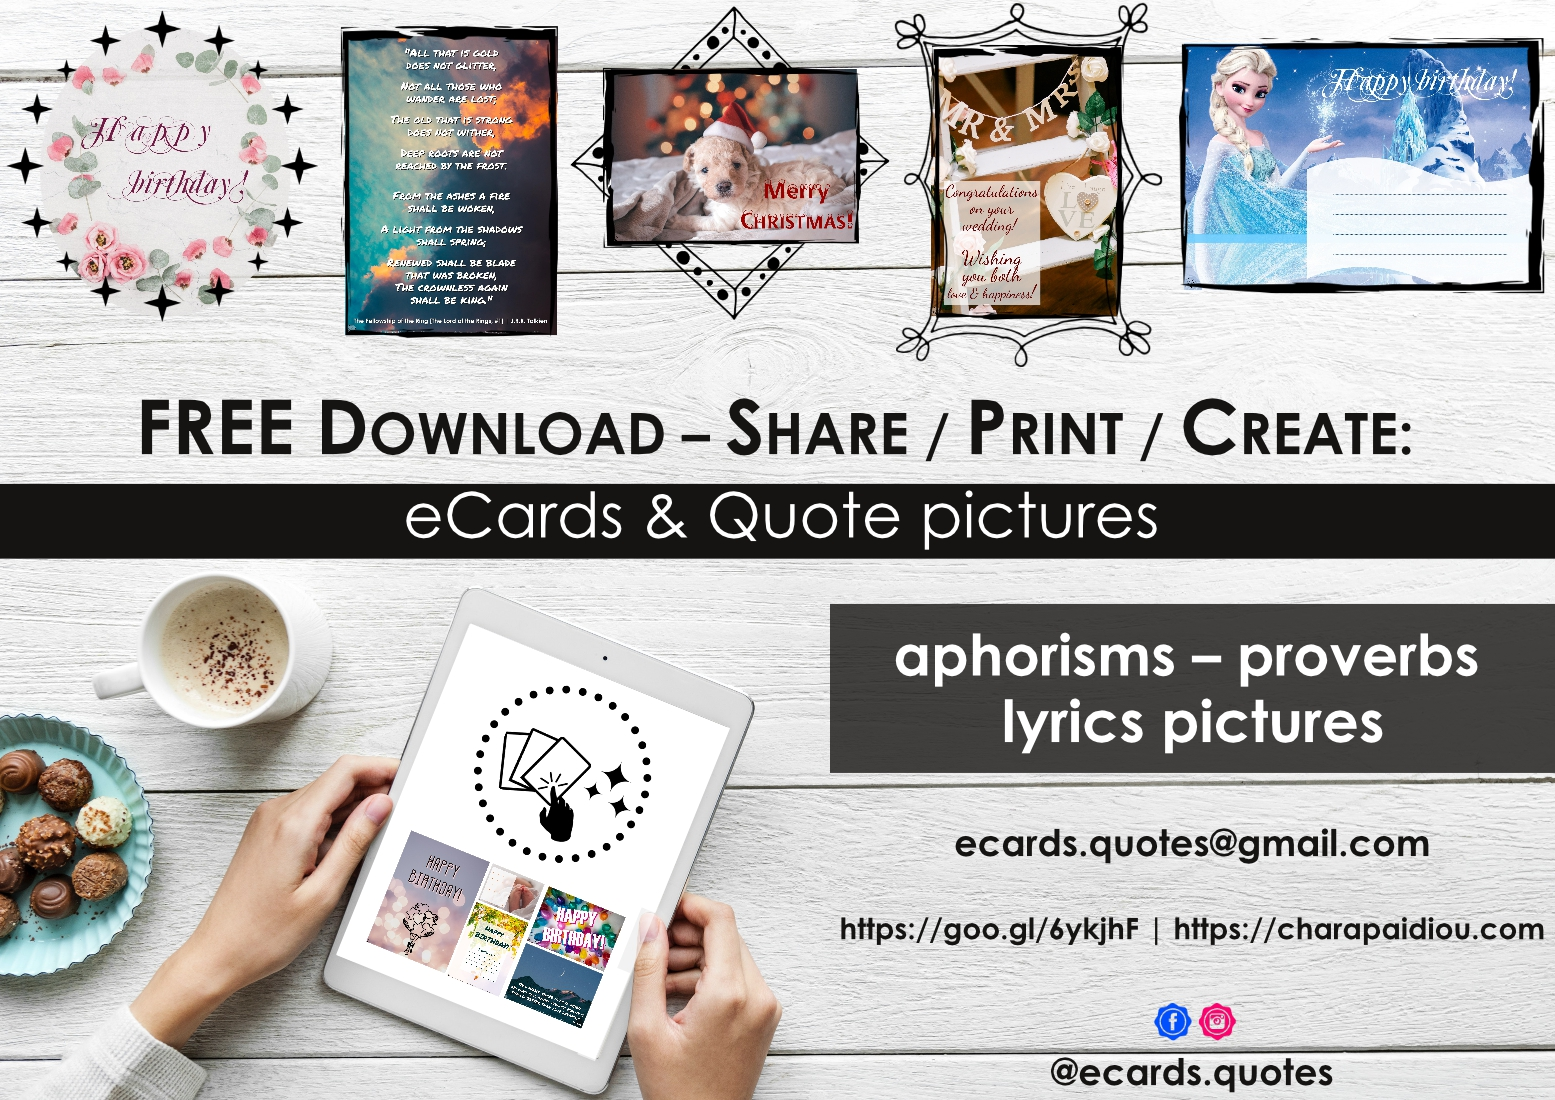 Download Share And Or Print ECards Birthday Cards Greeting Card Famous Quotes Pictures Aphorism Proverb Lyrics Totally Free